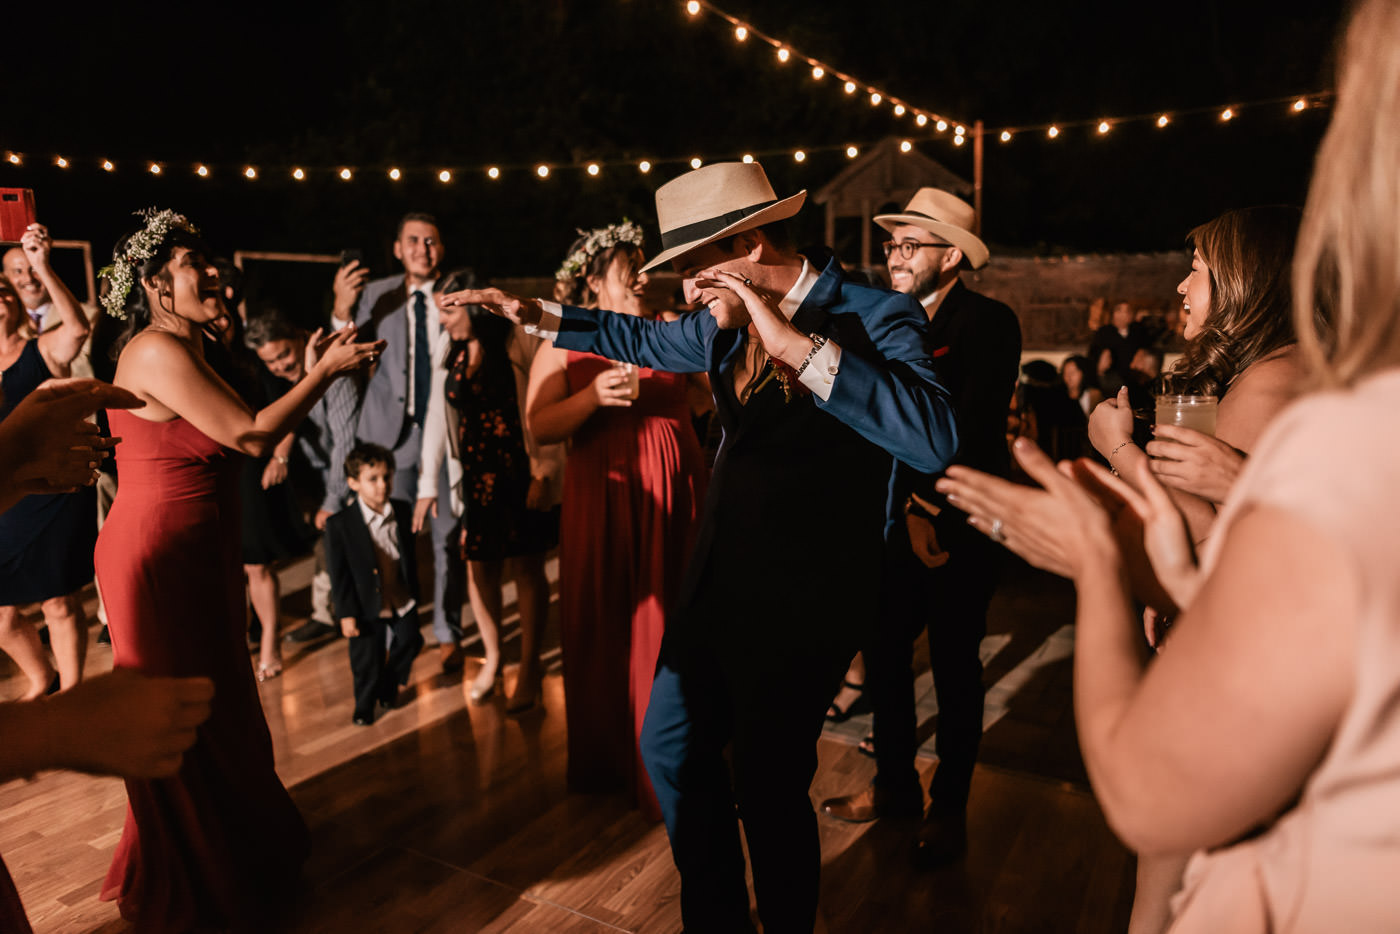 Groom puts on a fedora and tears up the dance floor.